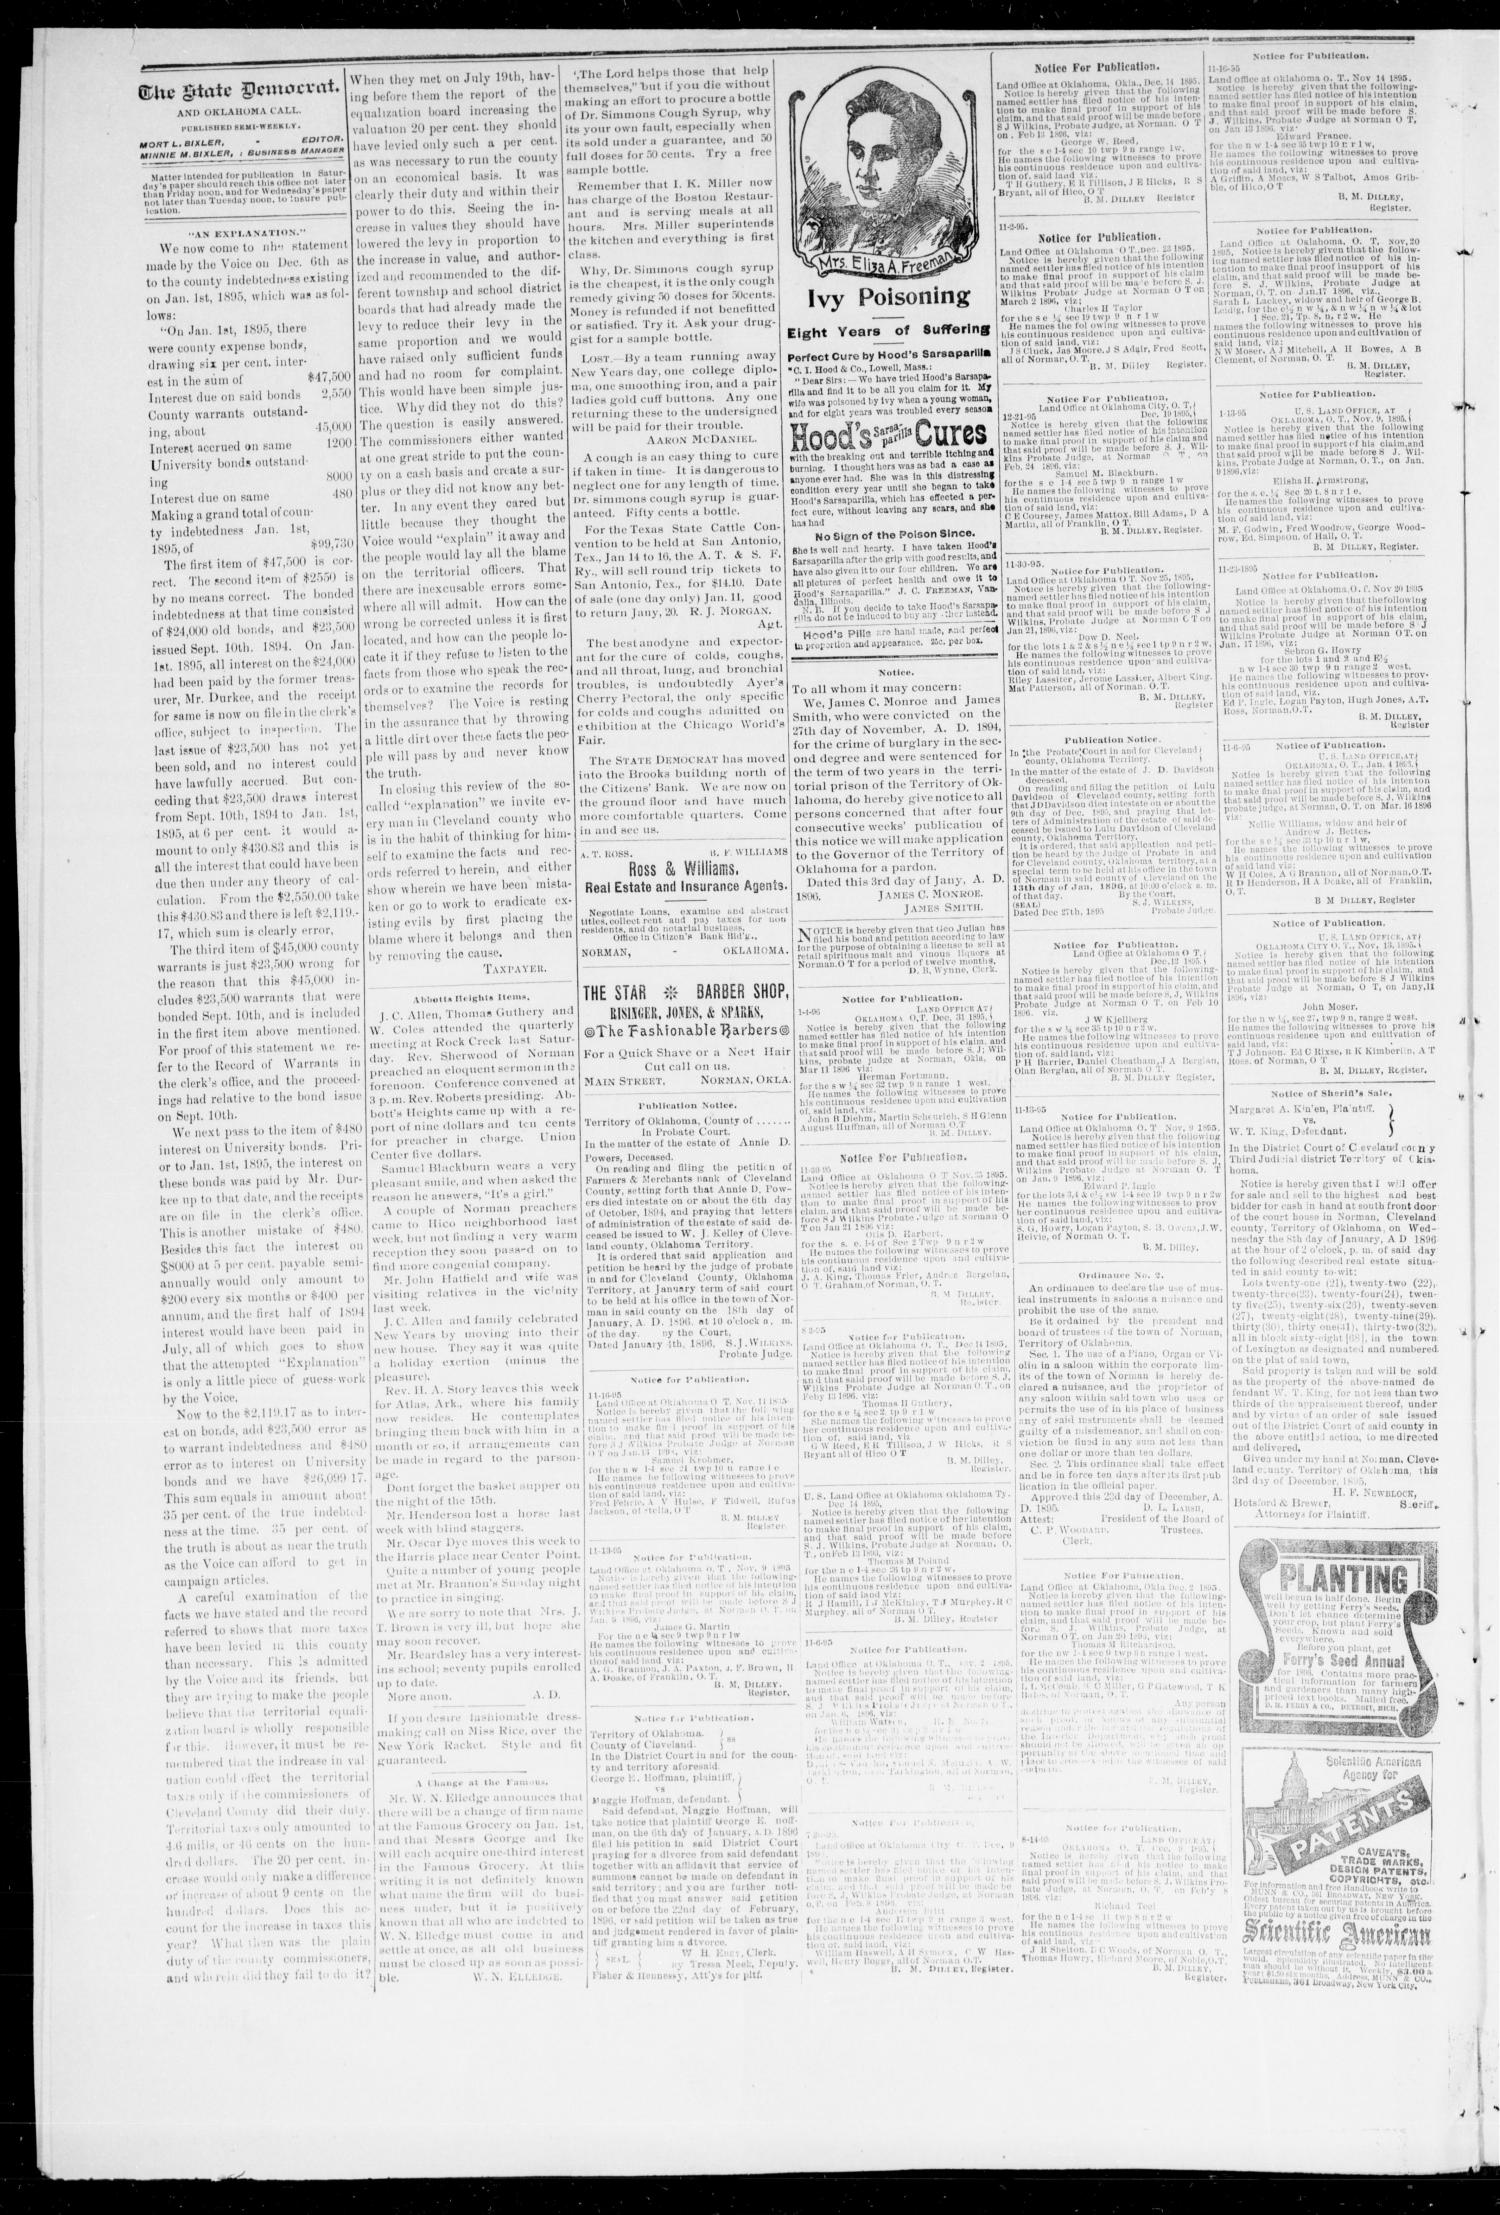 The State Democrat. (Norman, Okla.), Vol. 7, No. 52, Ed. 1 Saturday, January 11, 1896                                                                                                      [Sequence #]: 2 of 4